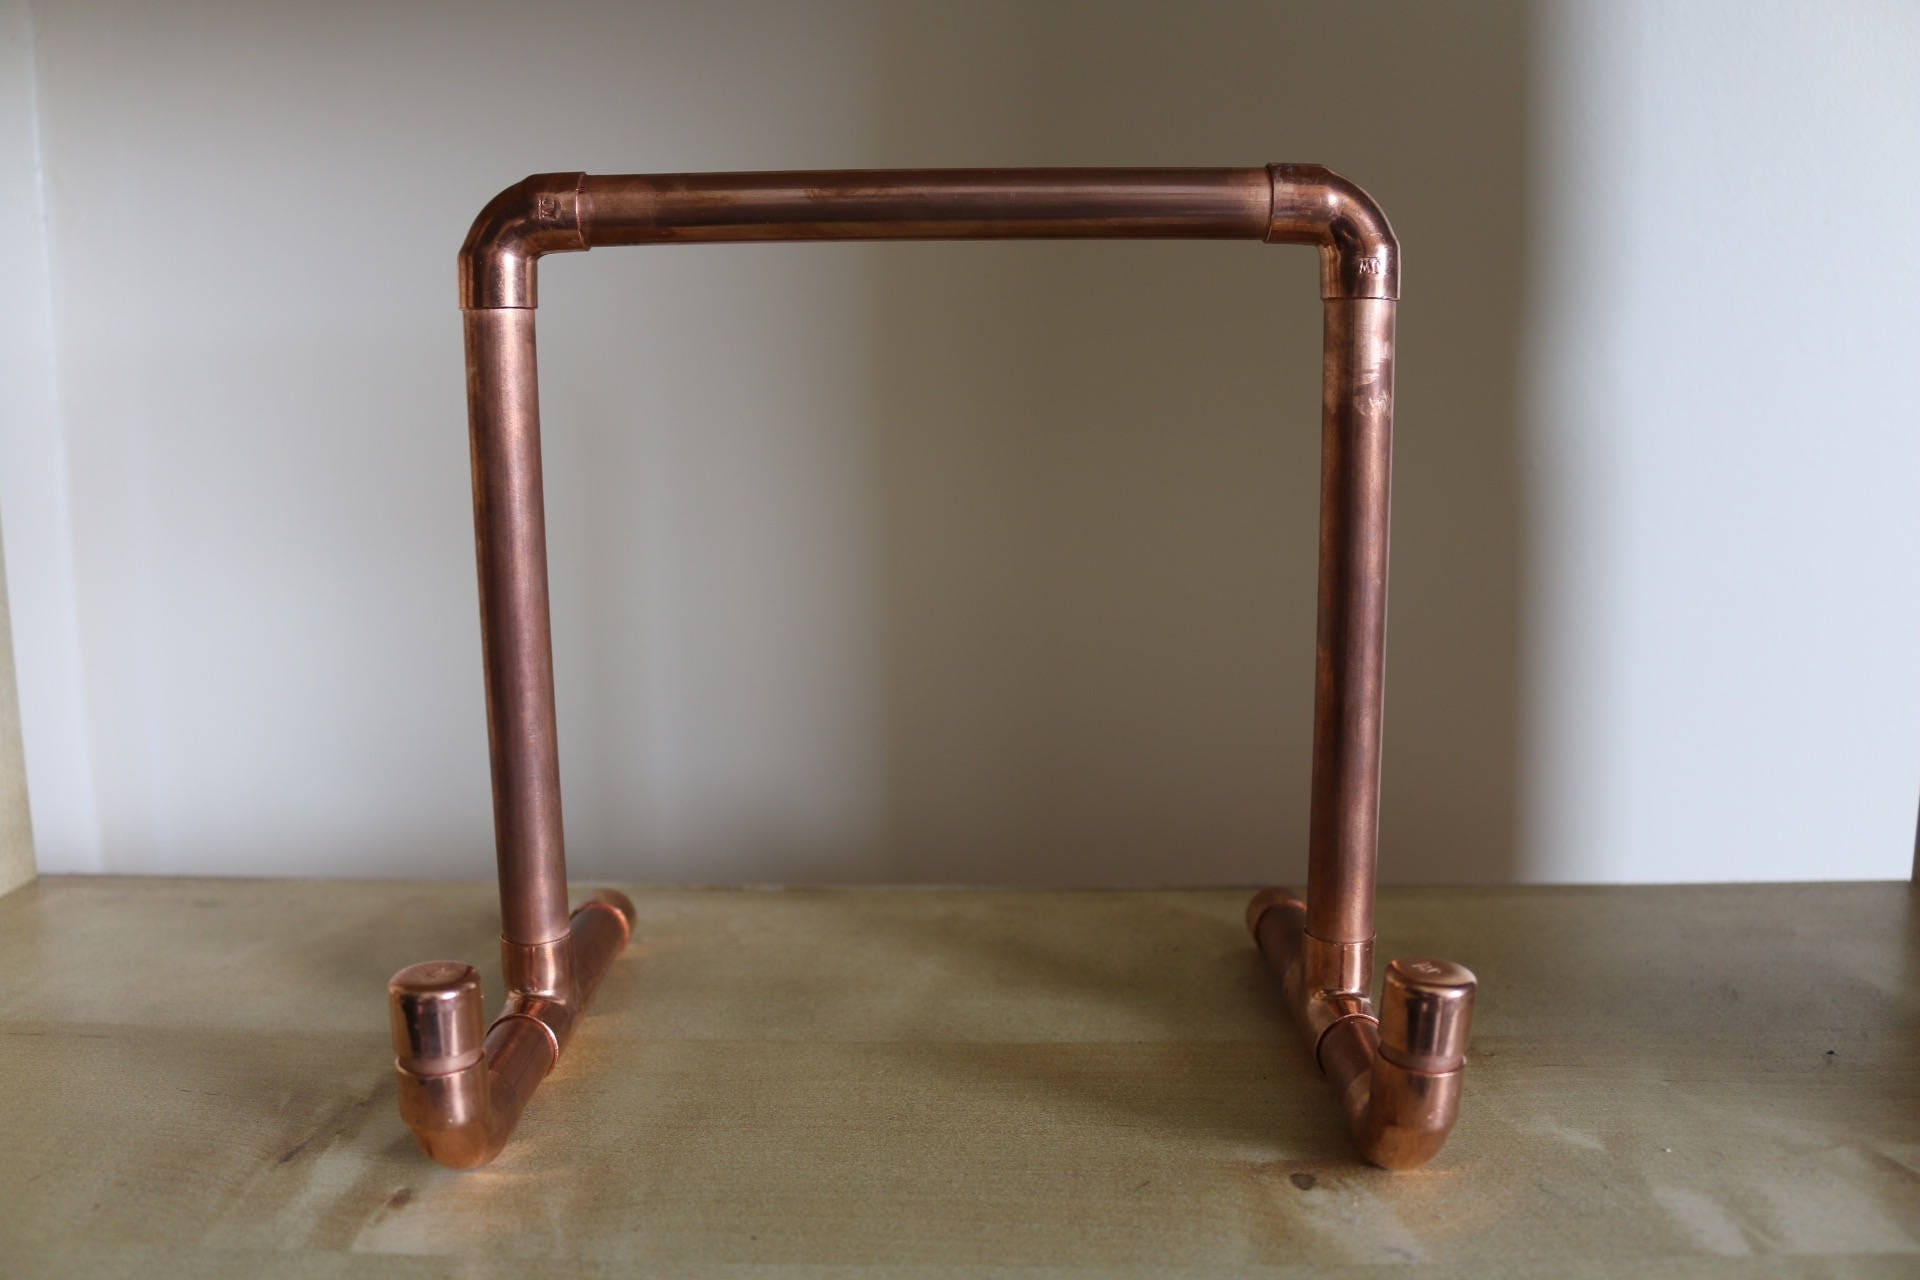 copper pipe tablet ipad book holder